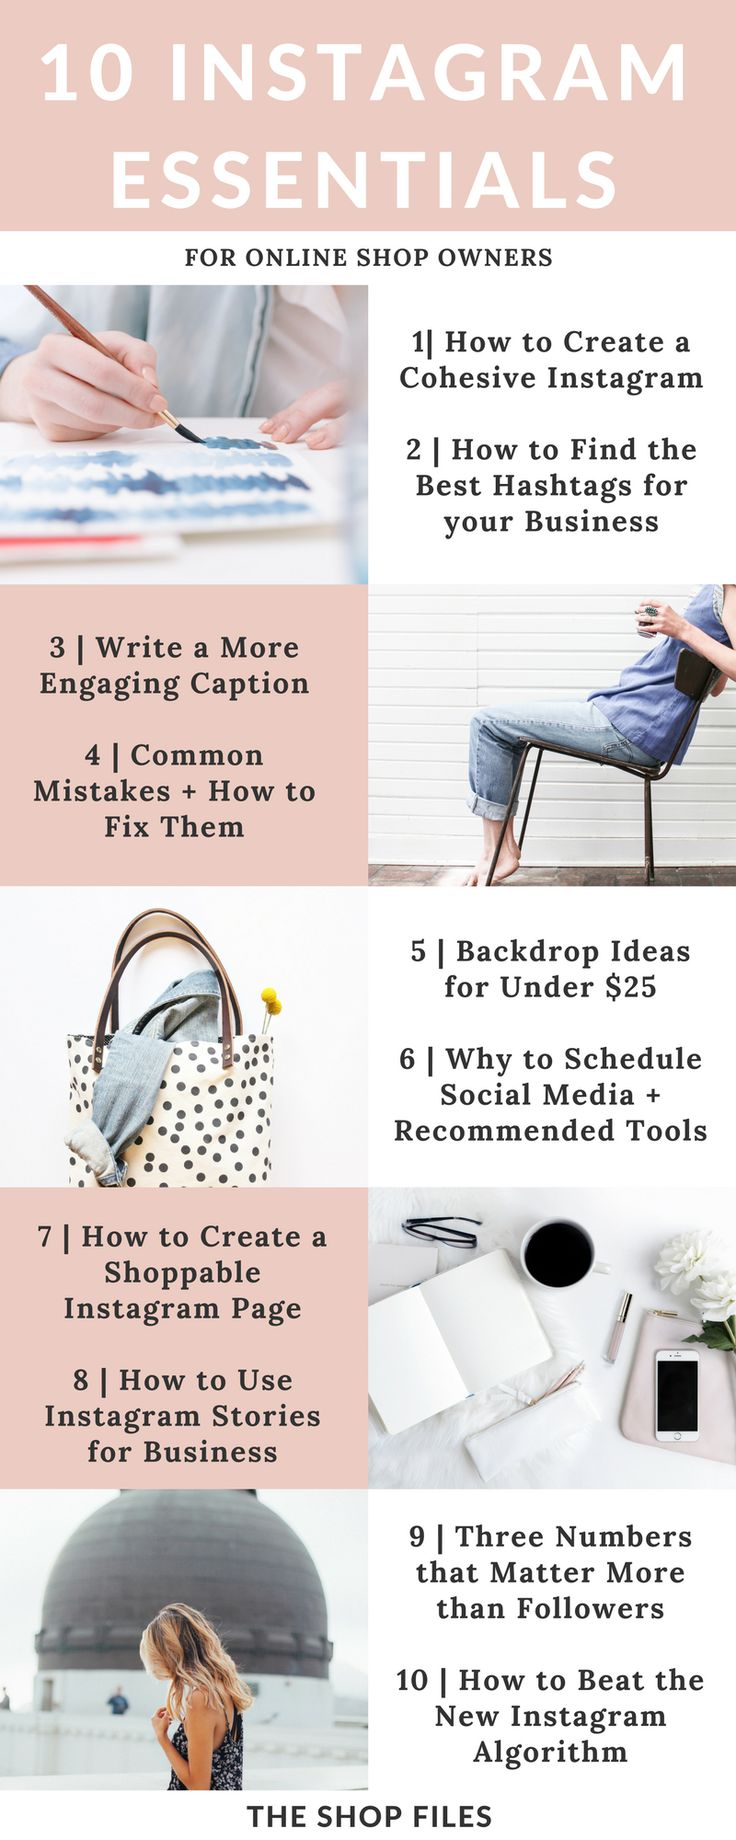 There's more to Instagram than popular hashtags and follow/unfollow methods. Learn 10 actionable Instagram Tips for Business to grow your account today with the best hashtags for Instagram for your business and Instagram tips + tricks to increase followers